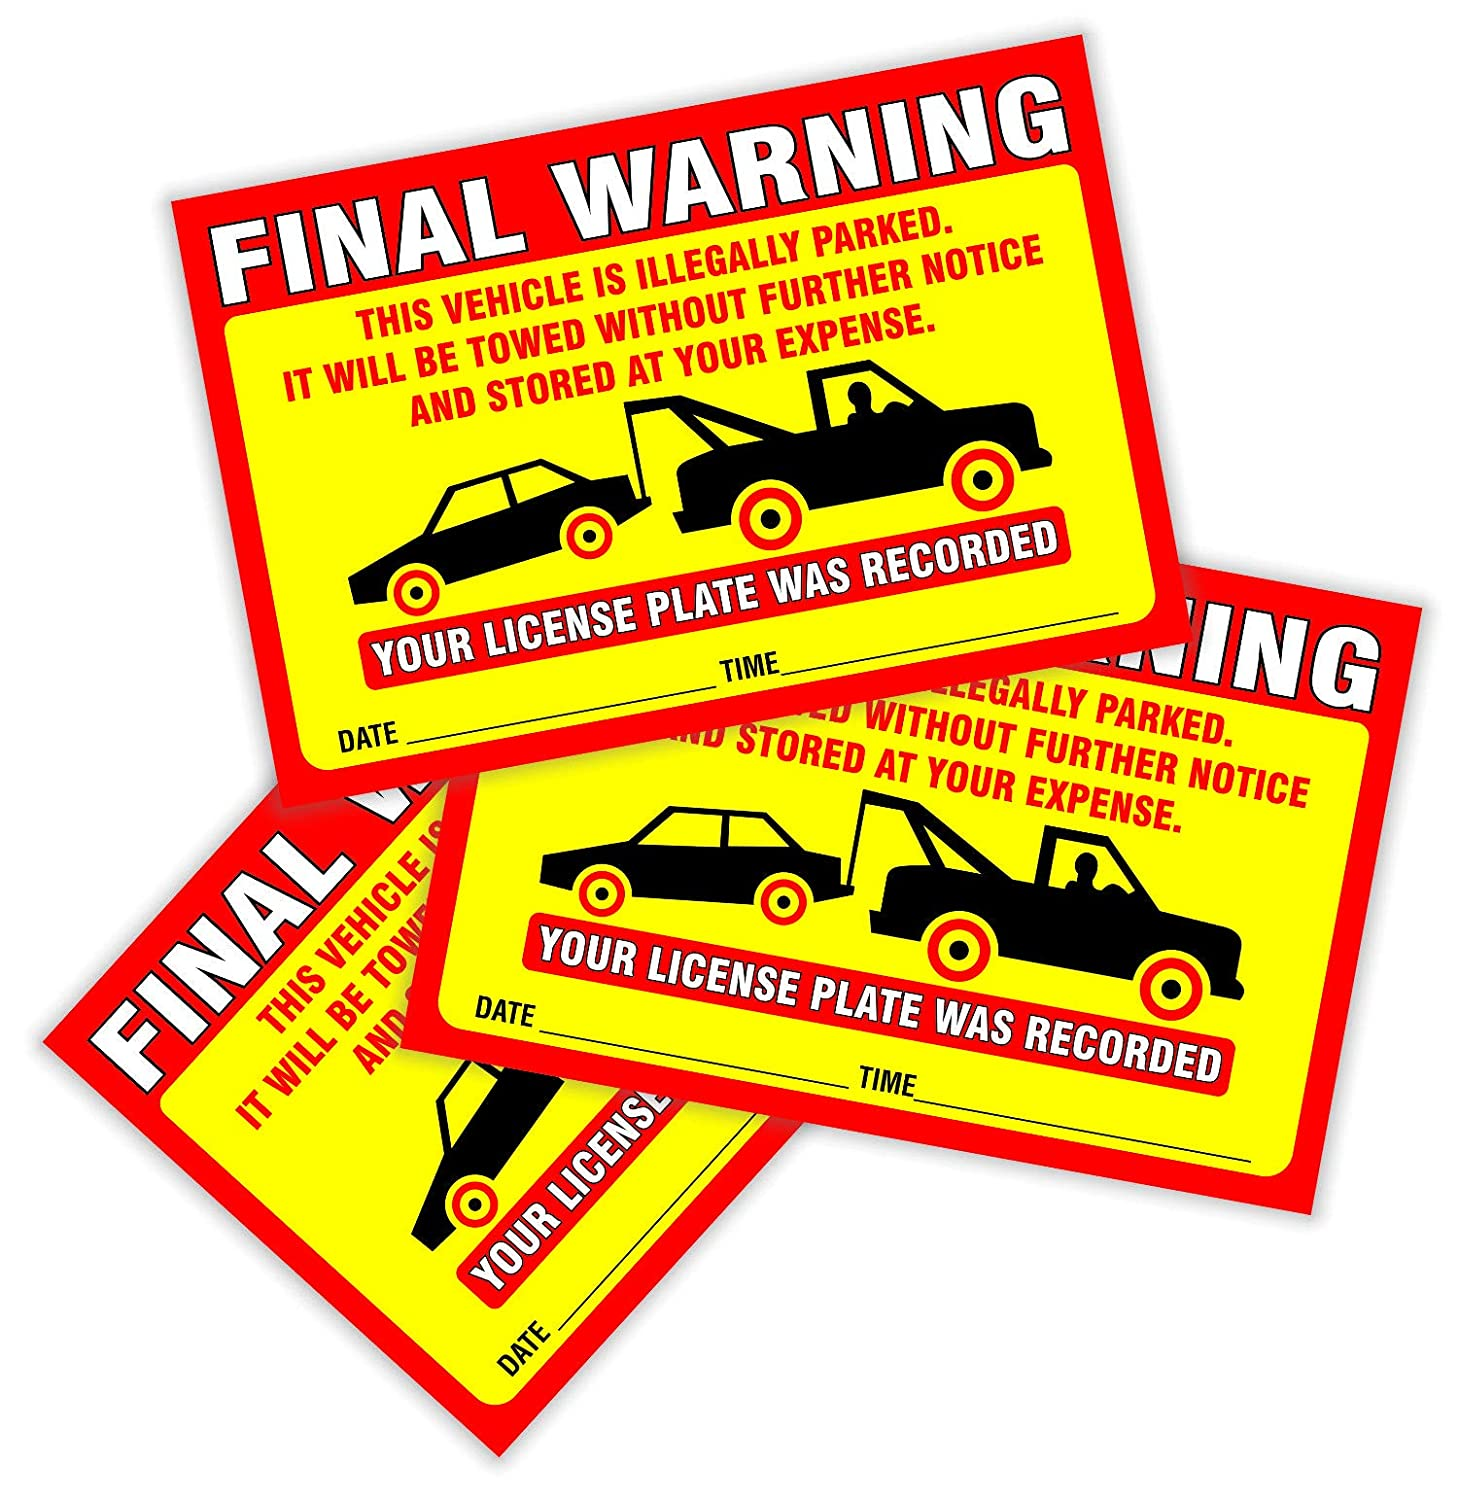 Large Size 6 X 9 Parking Violation Notice Vehicle is Illegally Parked Pack of 50 Yellow Final Warning Stickers